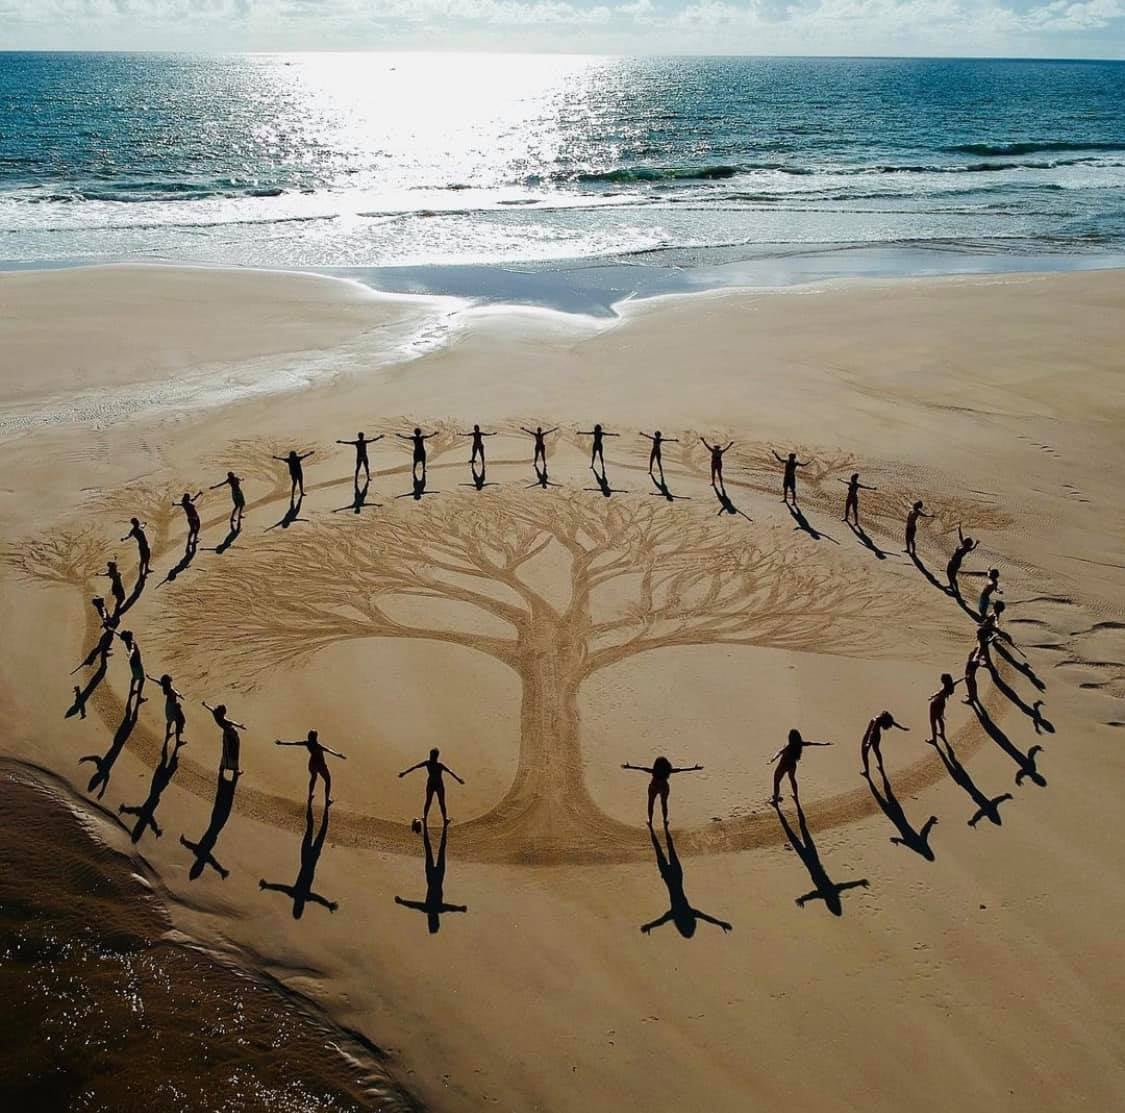 Circle of humans around the image of a tree, drawn on a beach